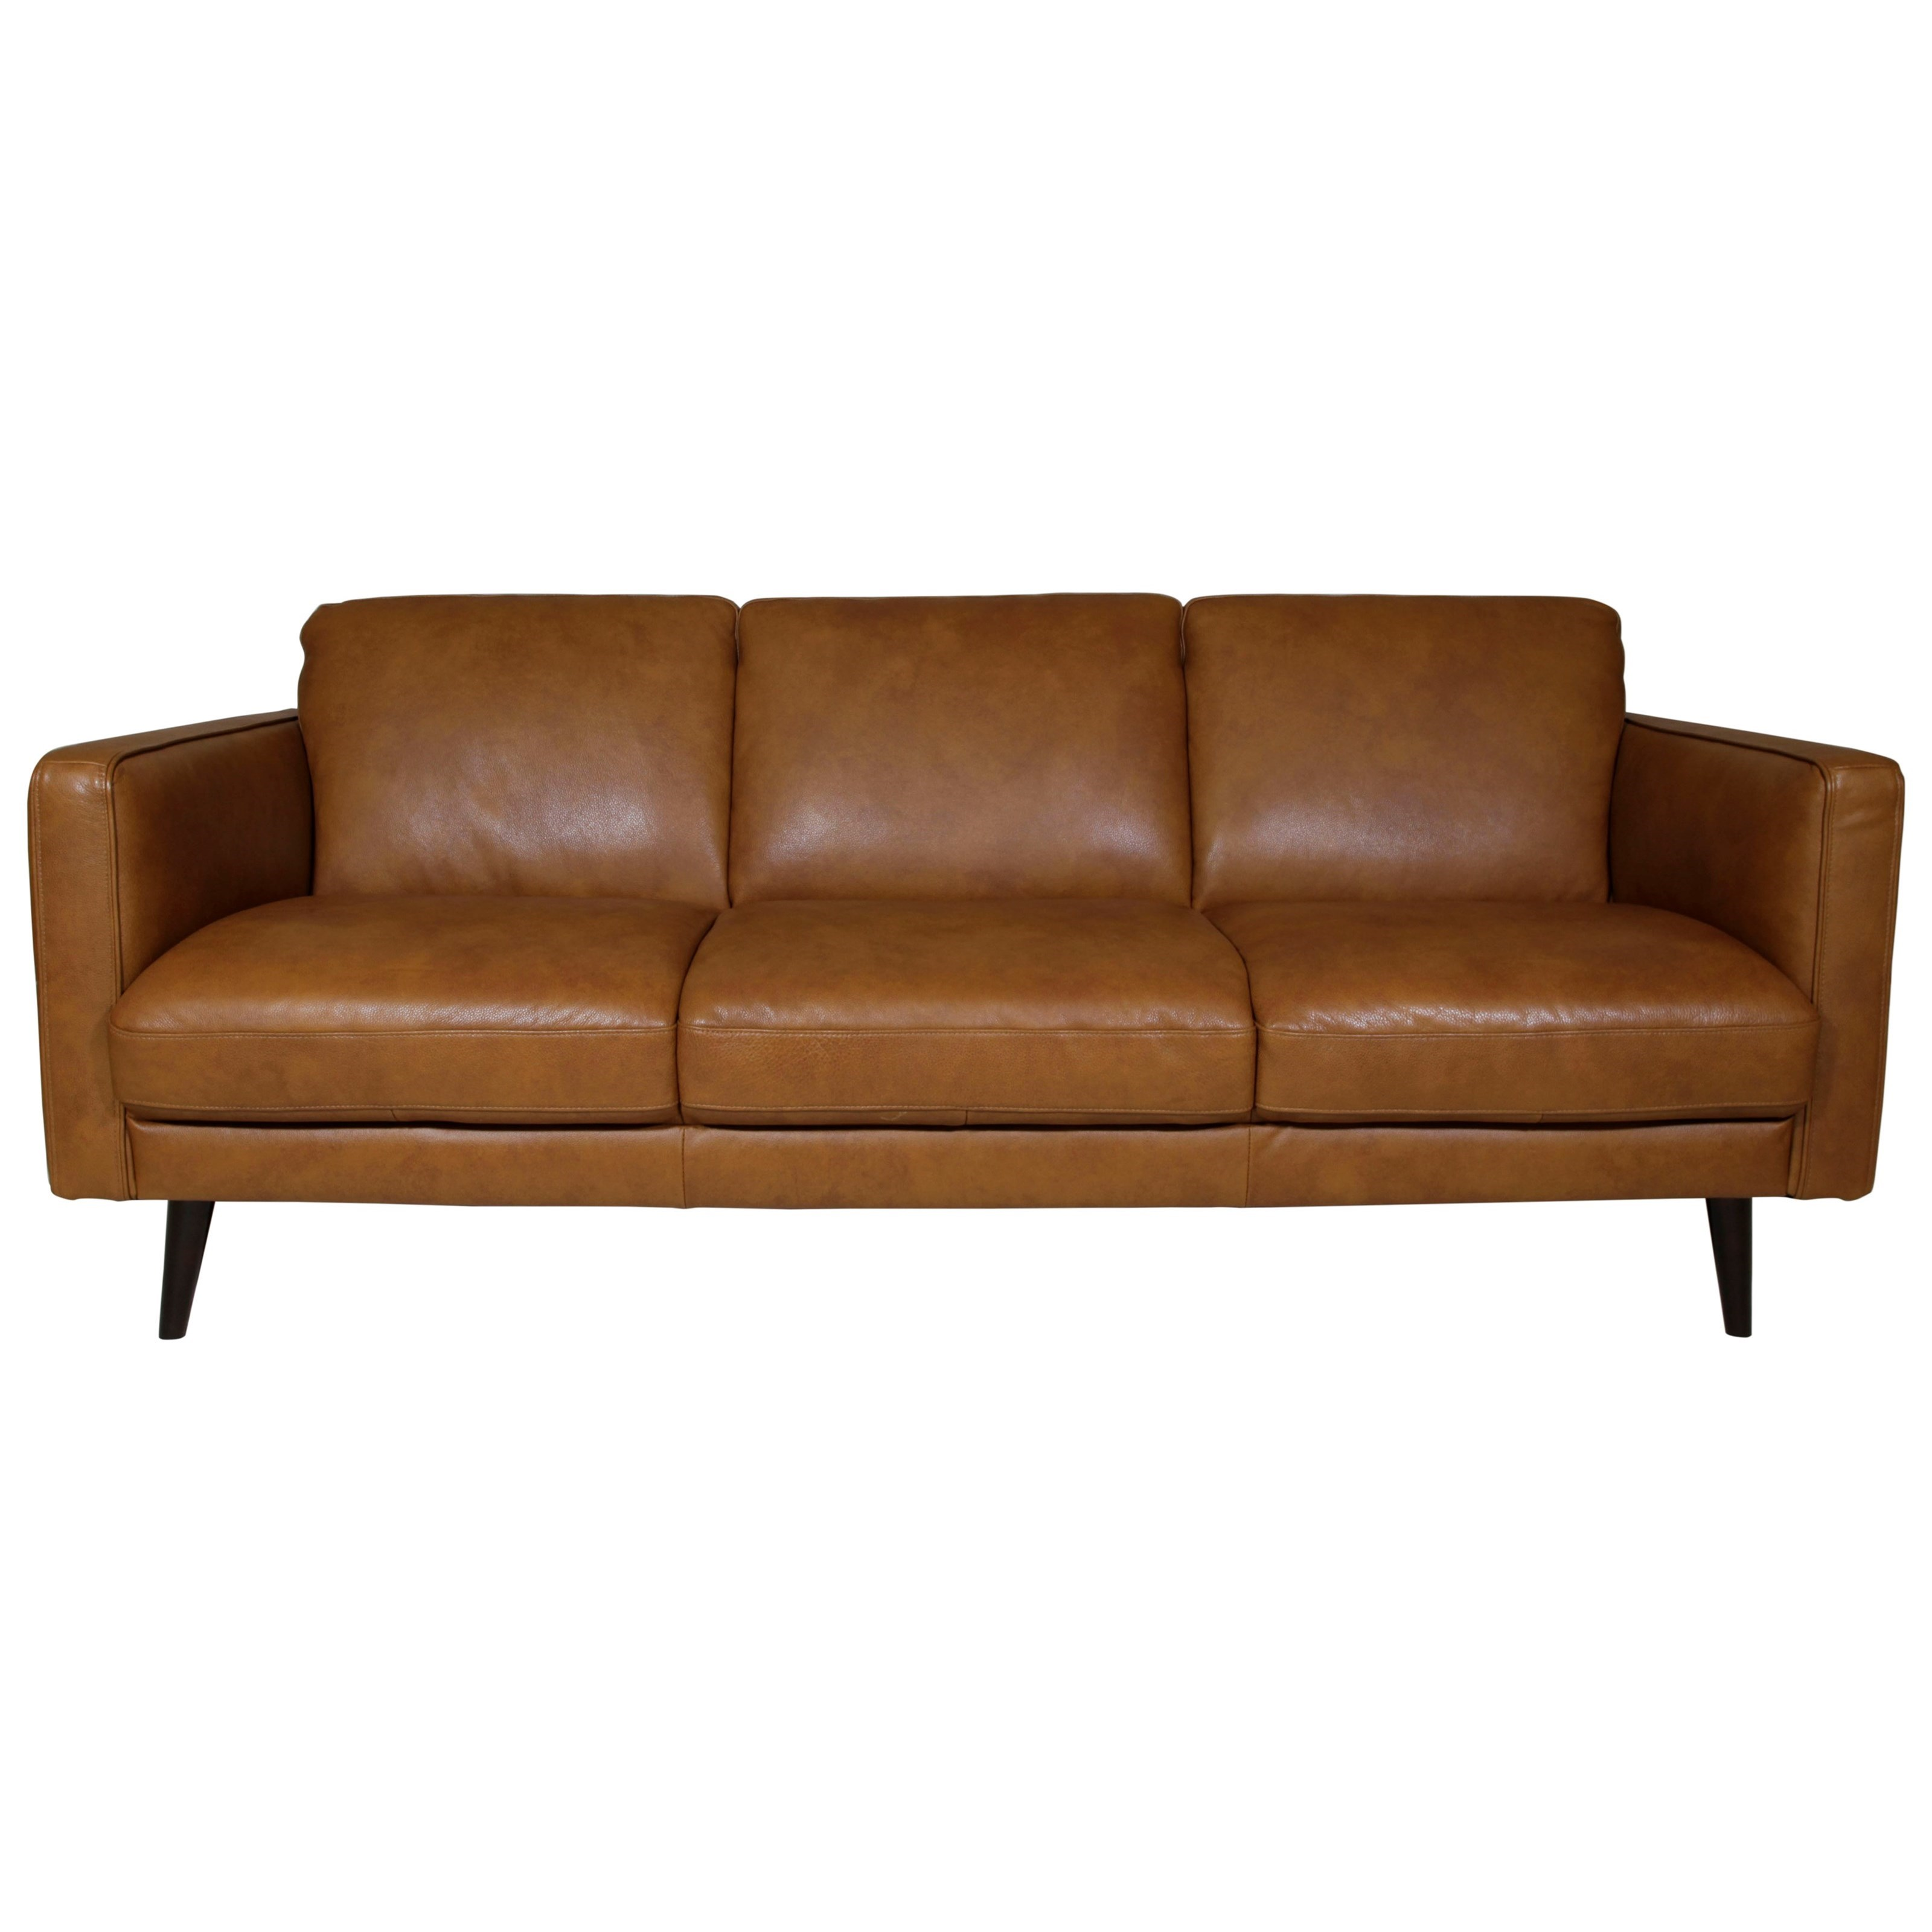 Destrezza Sofa by Natuzzi Editions at Red Knot